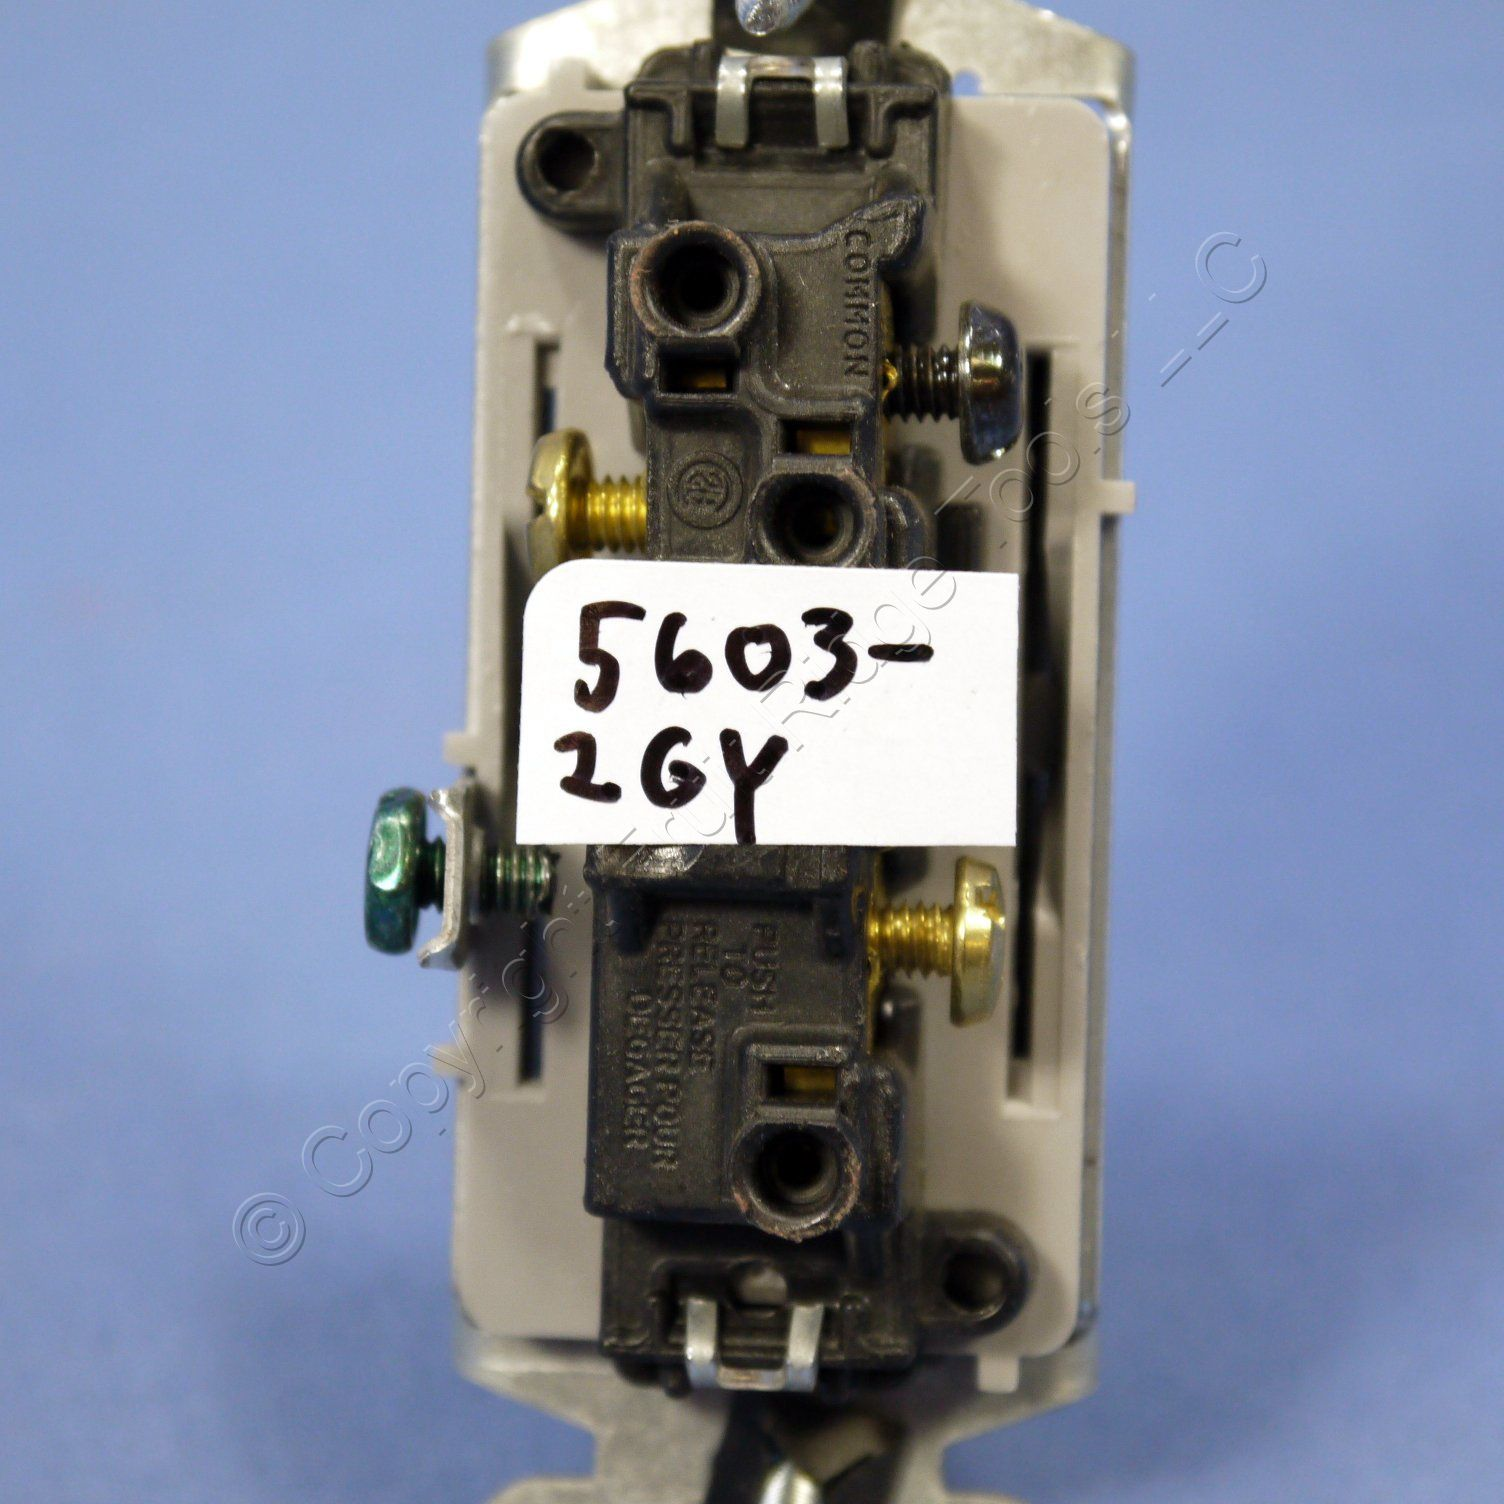 leviton 5603 2w wiring diagram wiring diagram leviton 5601 2w single pole decora switch 15a leviton 5603 wiring diagram